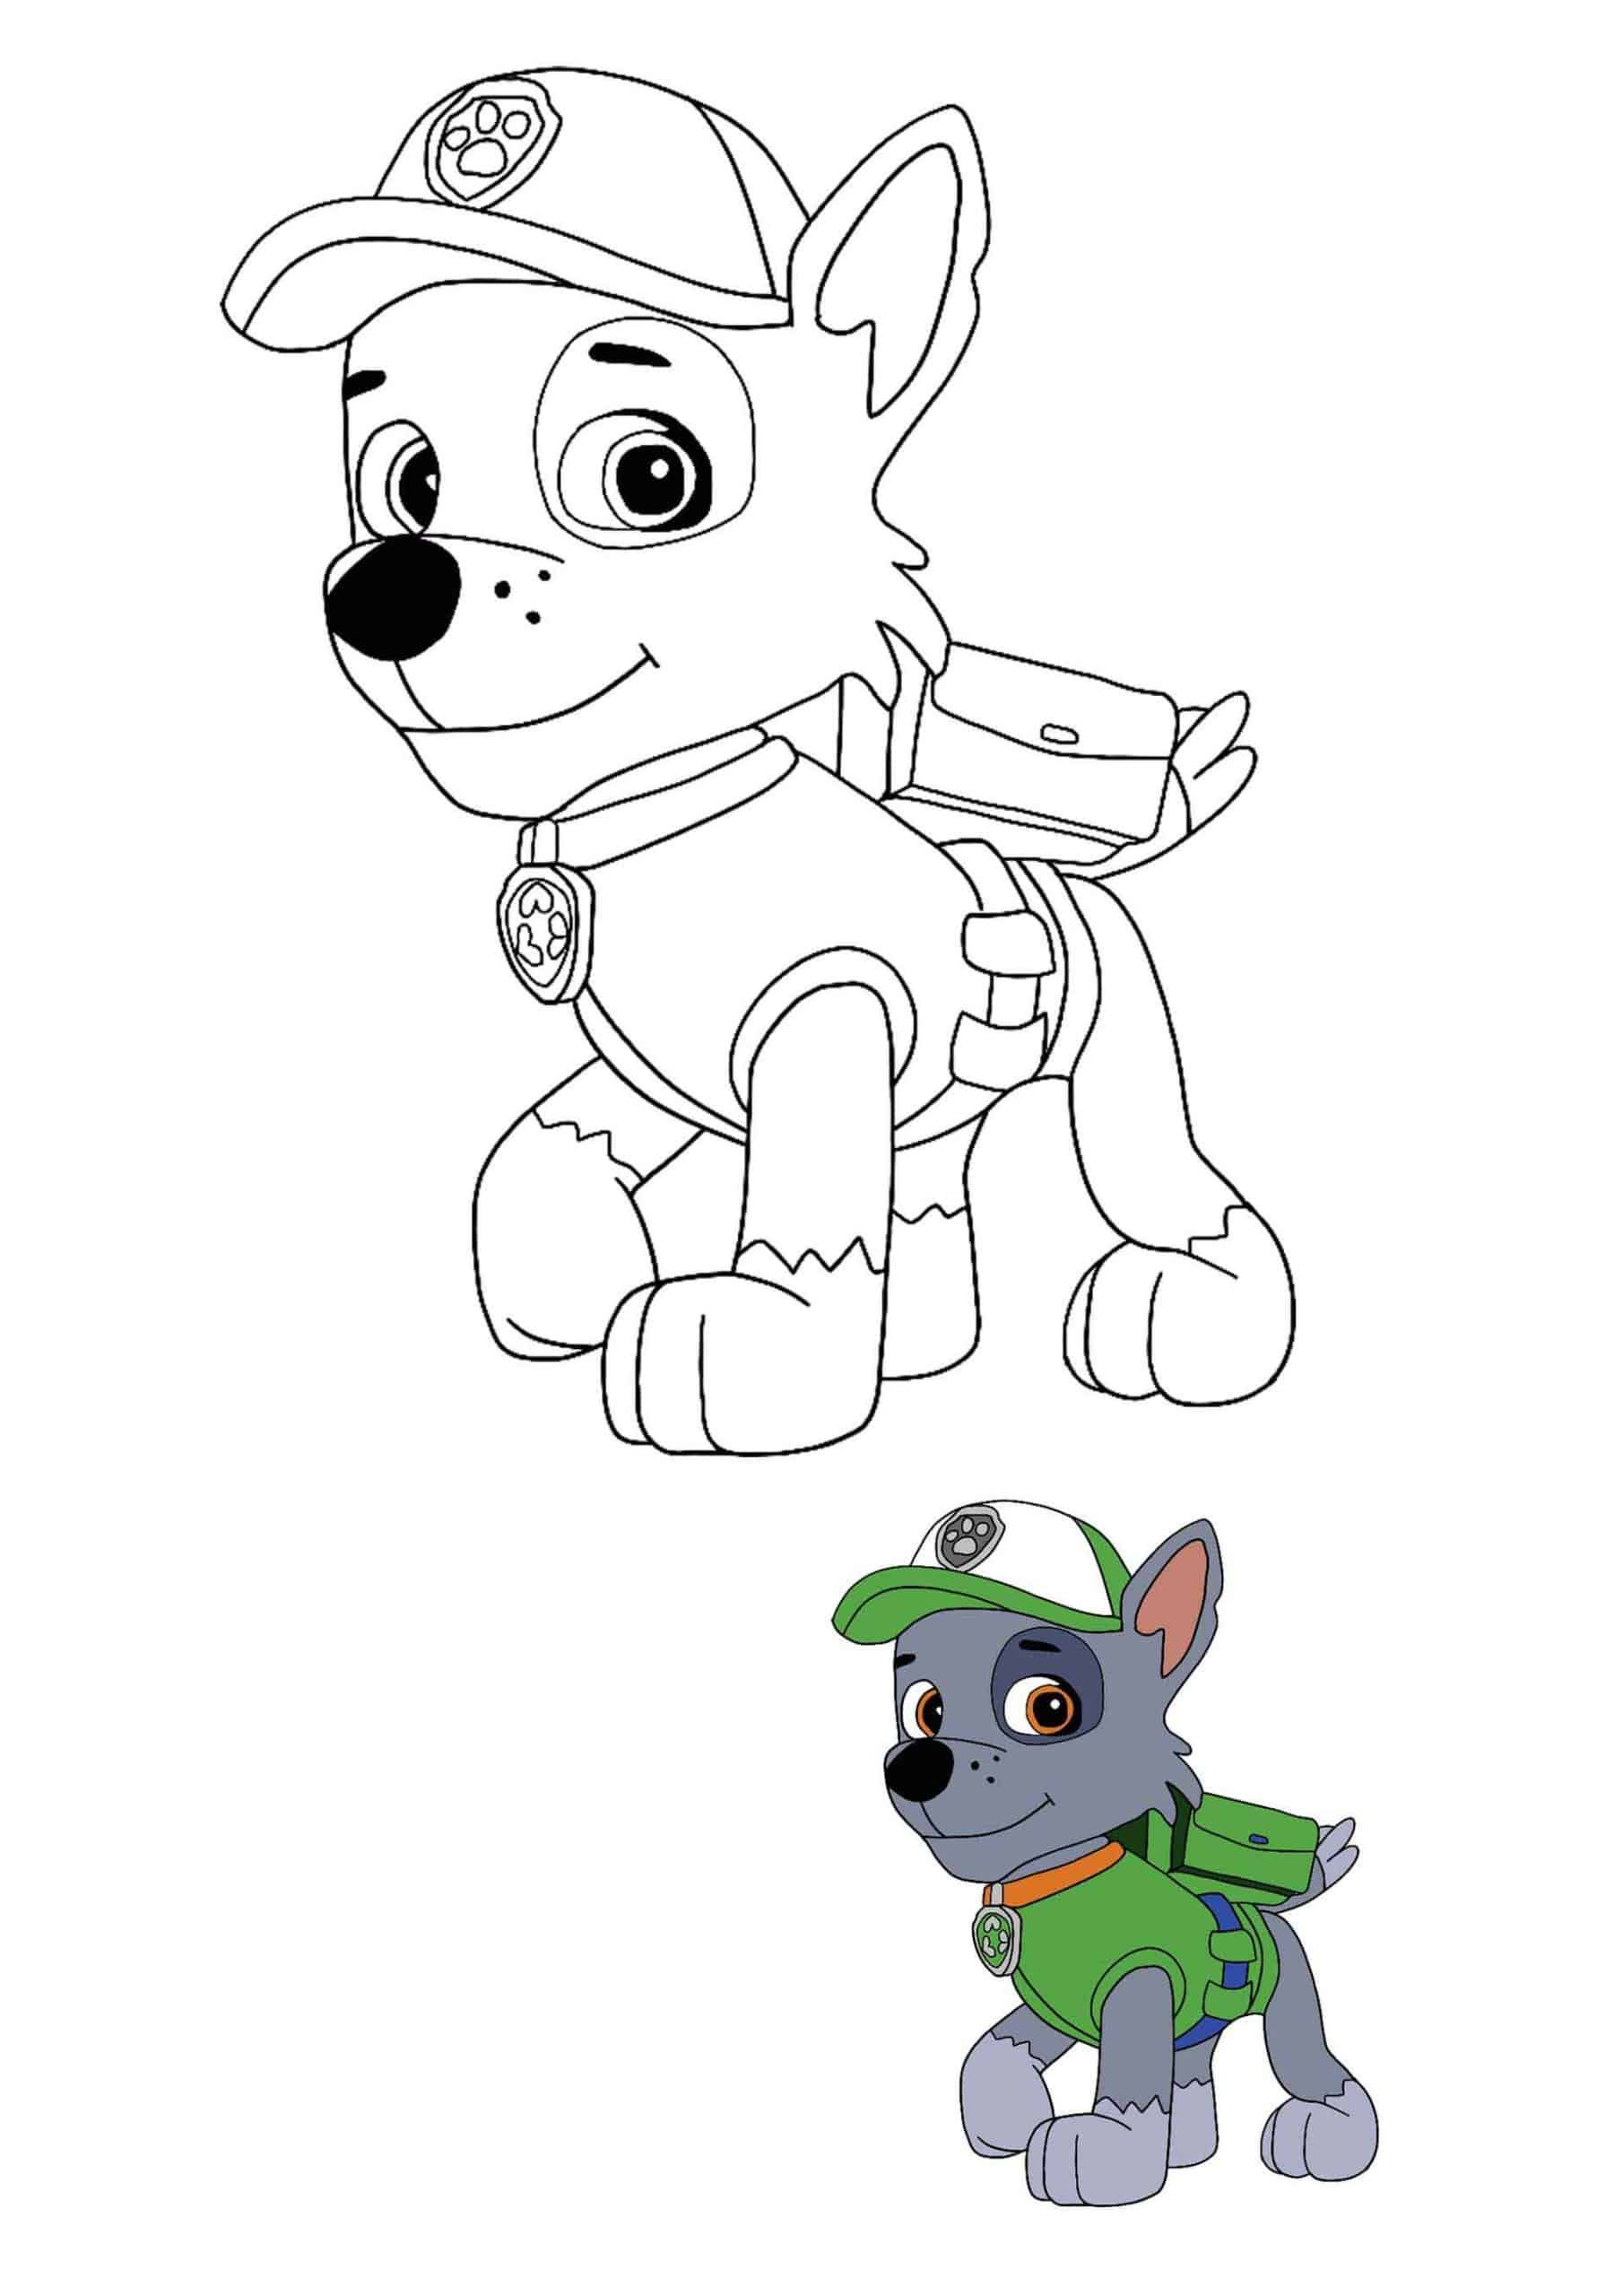 Paw Patrol Rocky Coloring Sheet With A Sample Paw Patrol Coloring Paw Patrol Rocky Paw Patrol Coloring Pages